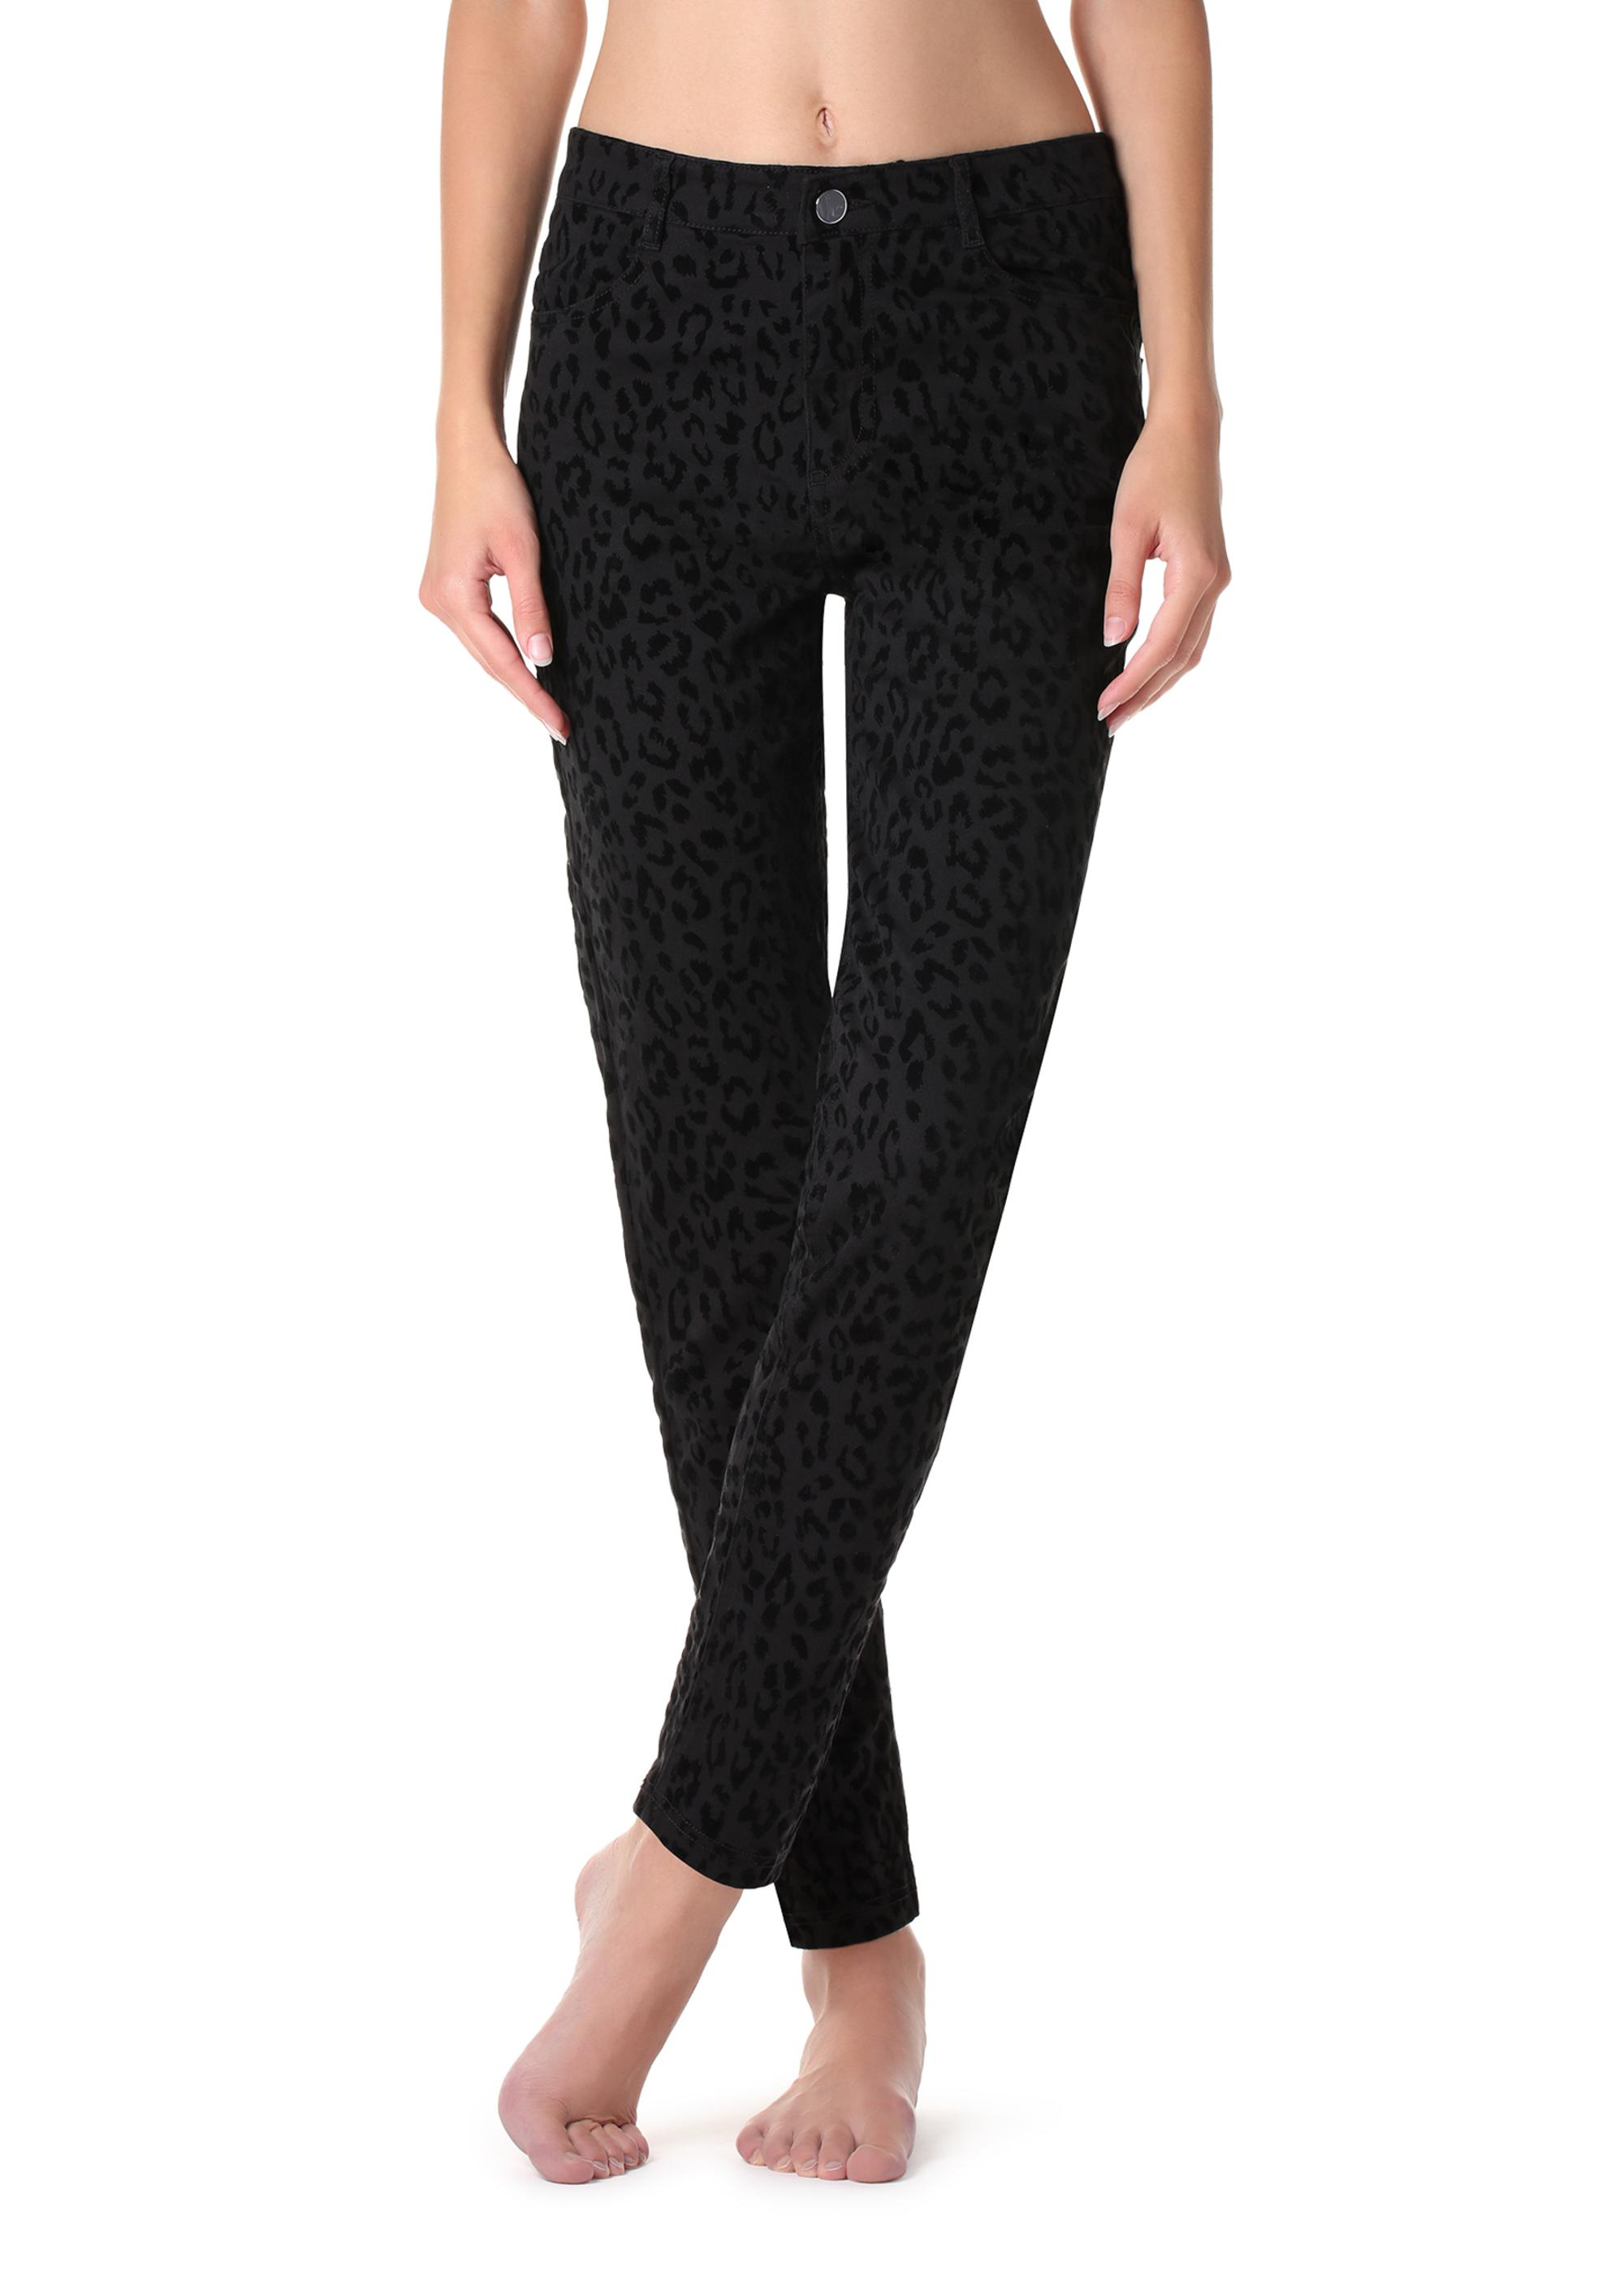 f95af7f8c7a1 Animal-patterned leggings - Calzedonia